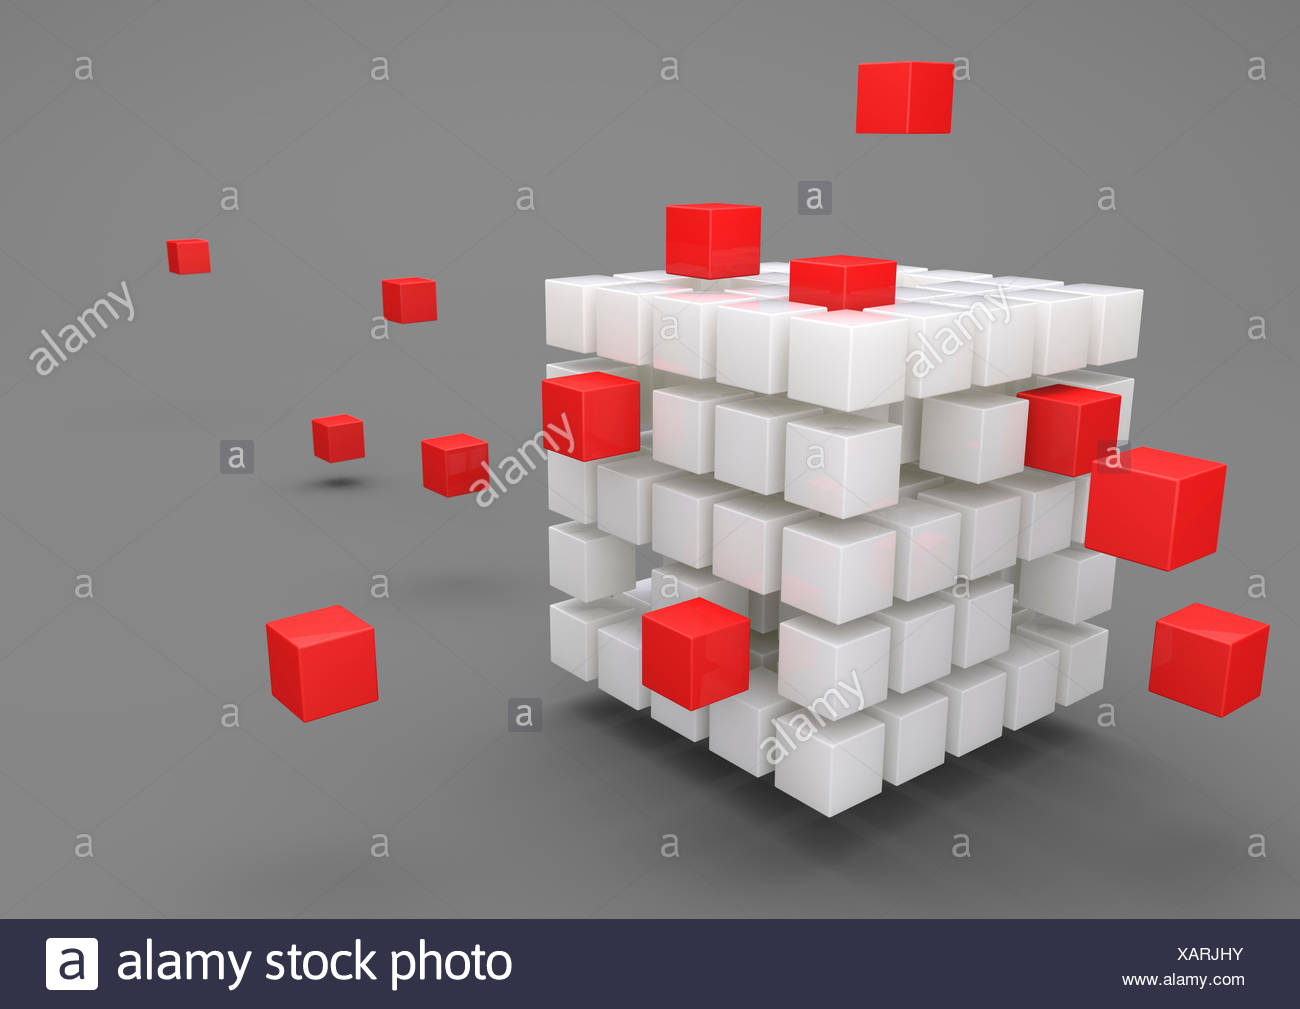 3D Illustration, Outsourcing, porcelain cubes with red cubes on gray background - Stock Image